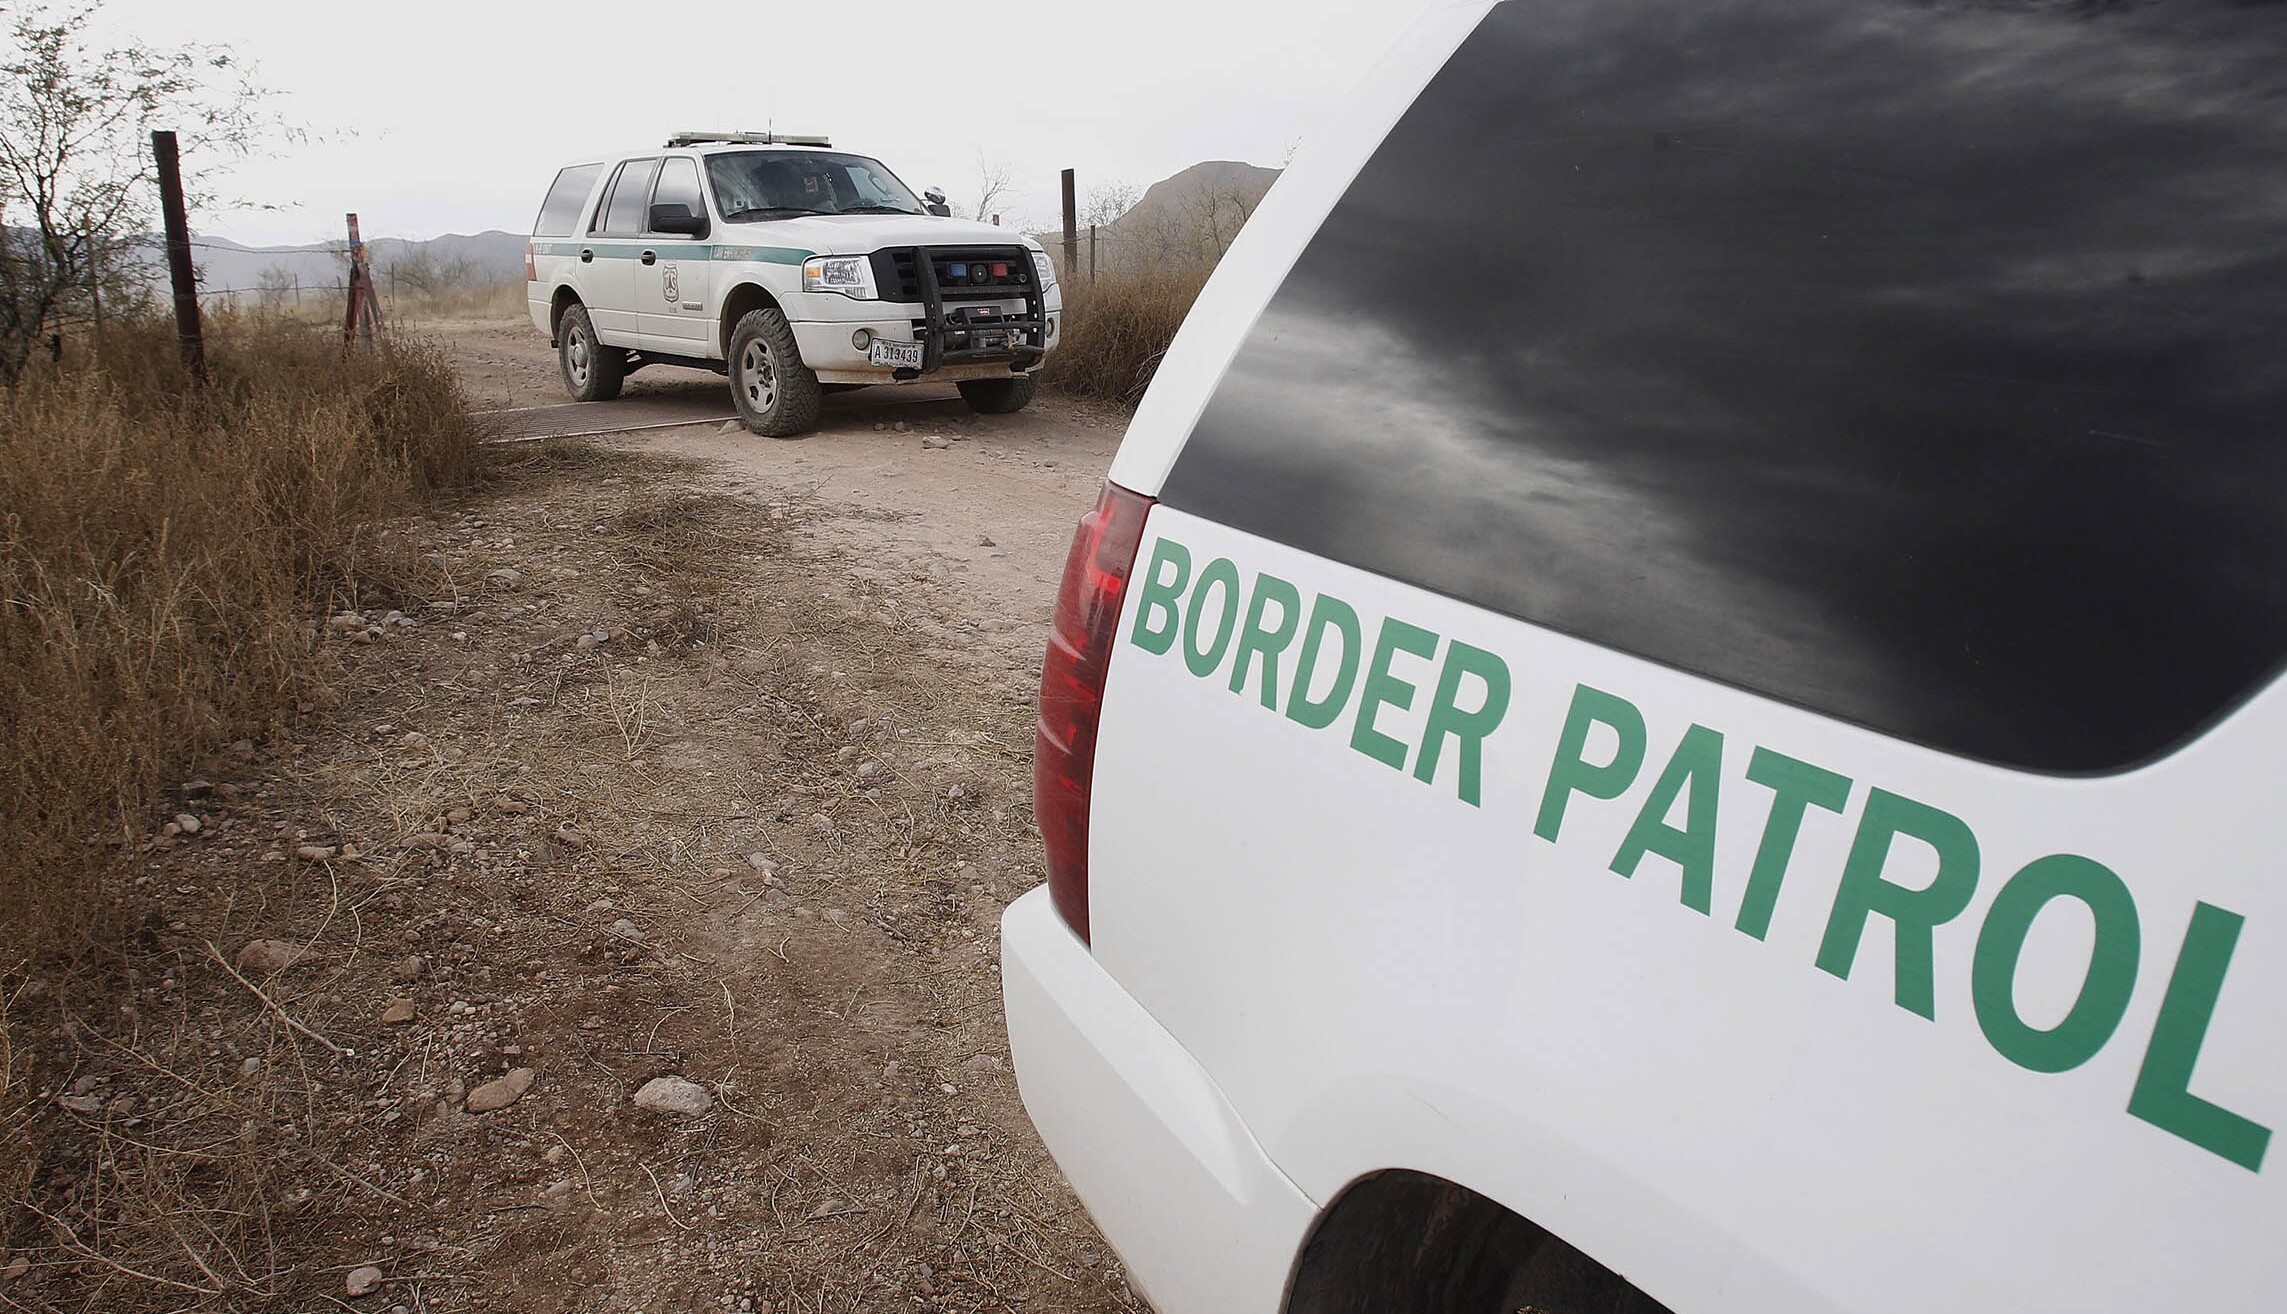 Drug smugglers bring 700lbs of cocaine into U.S. then flee into Mexico across border with no physical barrier